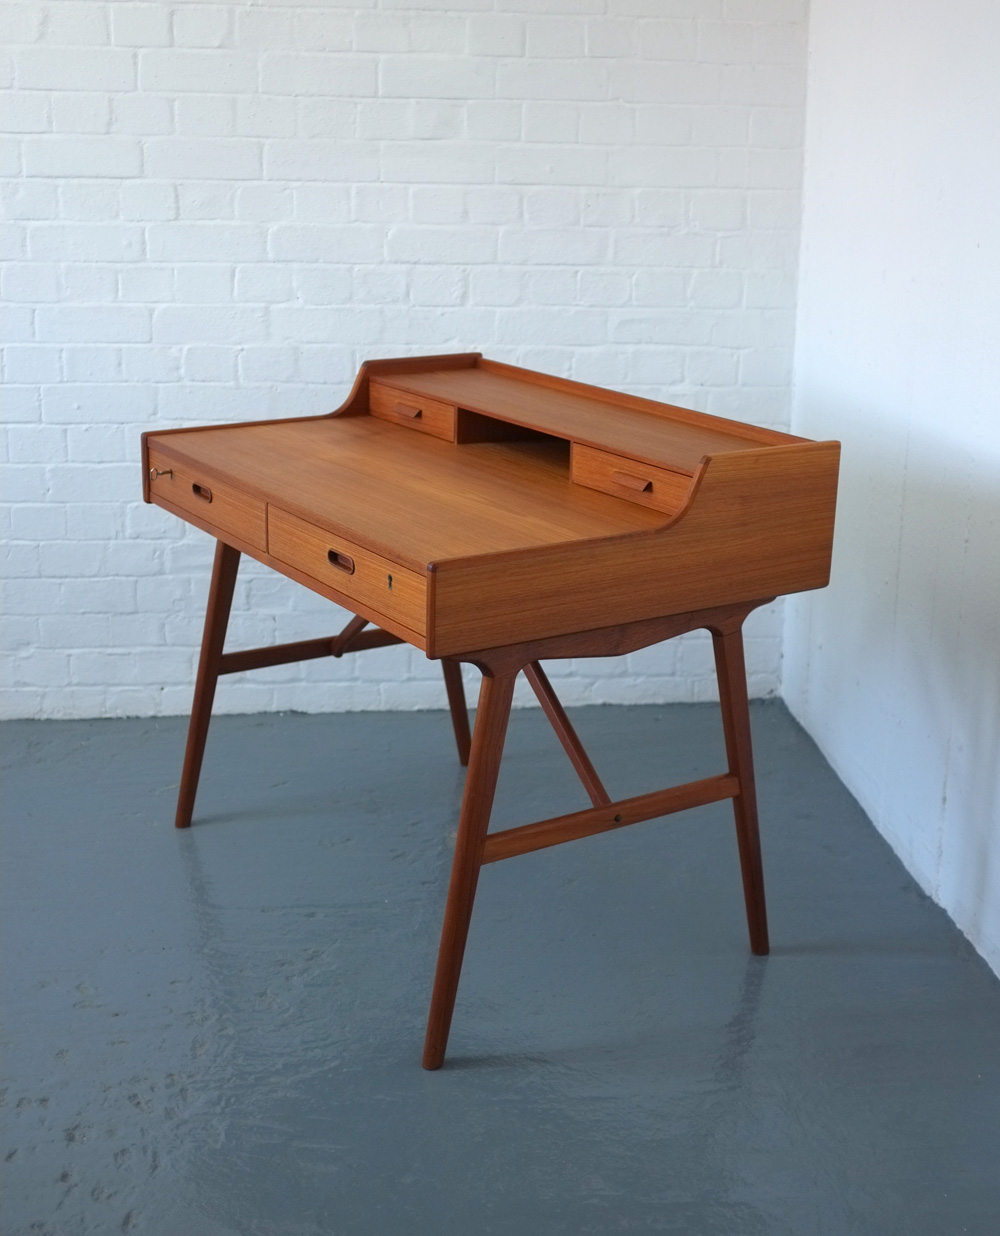 furniture id century danish f org desks at mid desk tables sale for rosewood writing